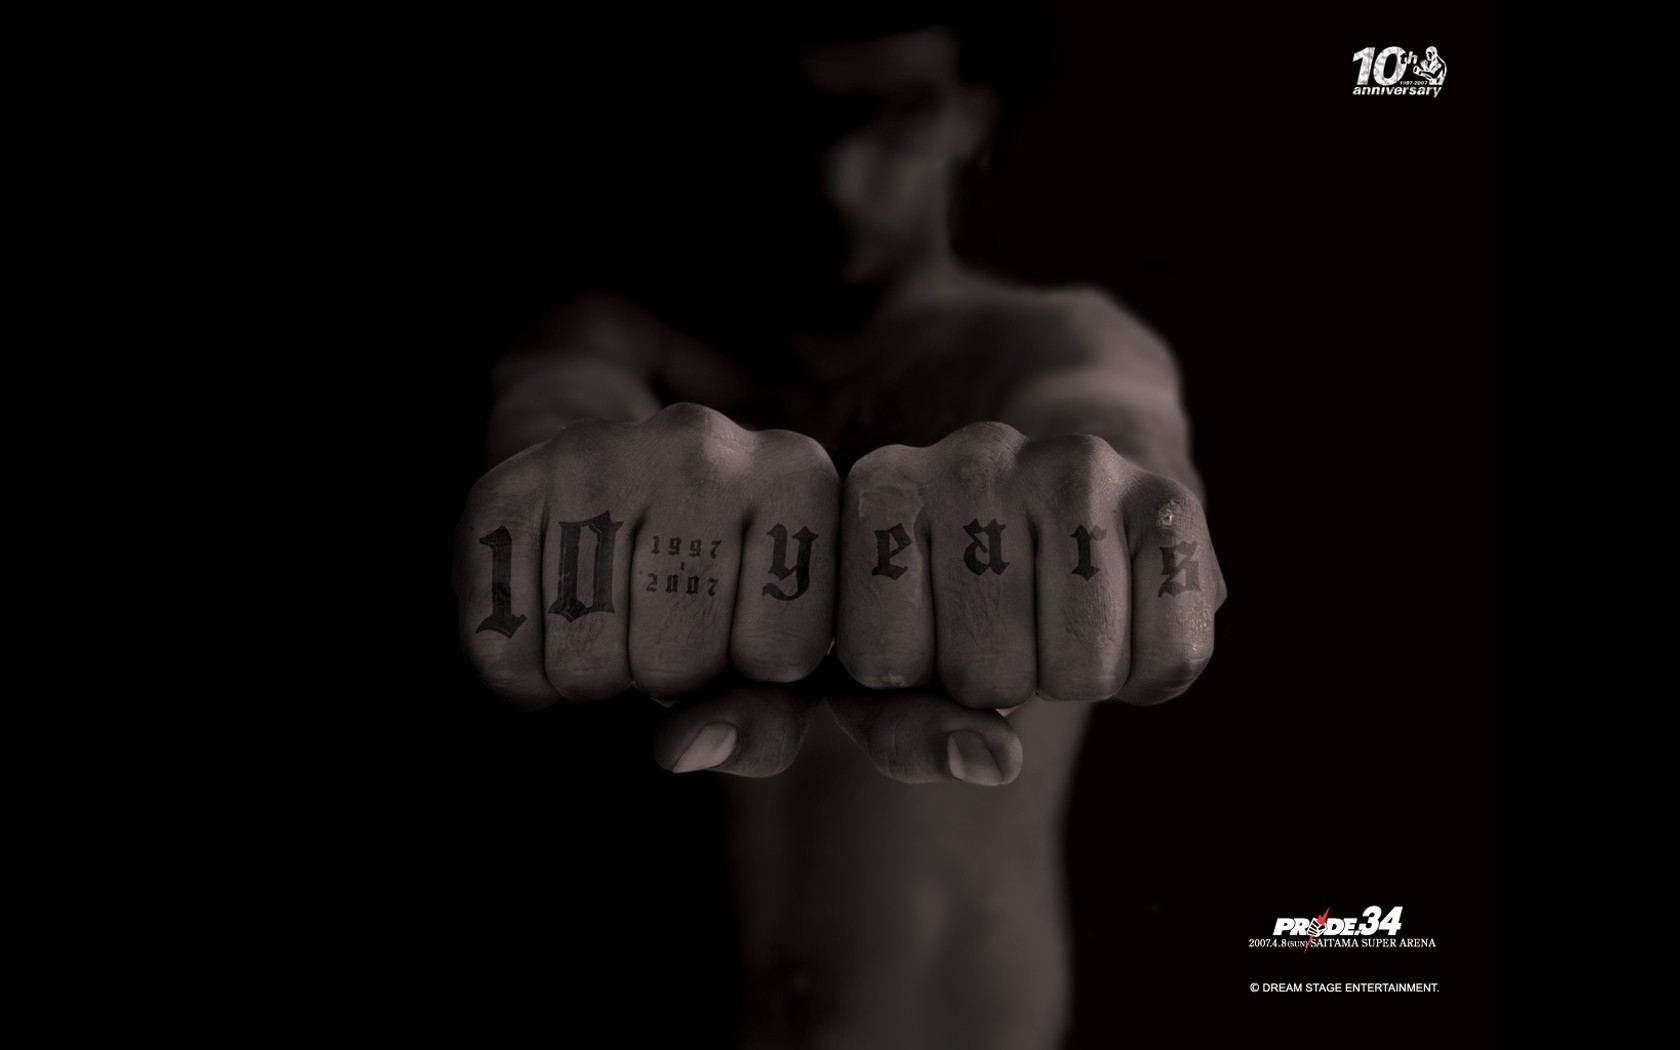 Download Mma Fighter Wallpaper 46   Wallpaper For your screen 1680x1050